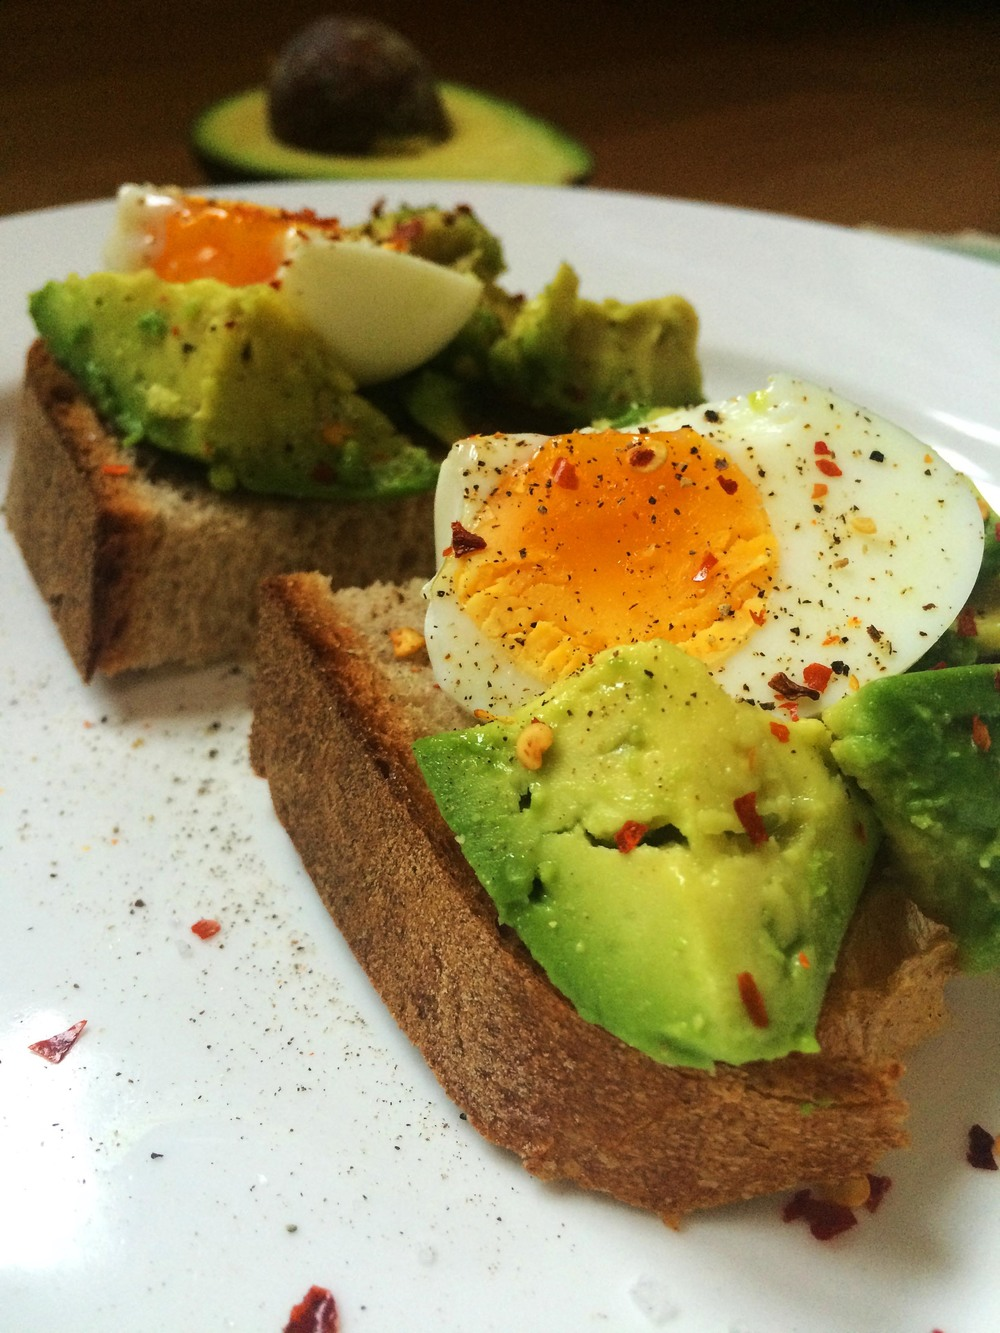 5-MINUTE AVOCADO AND HARD-BOILED EGG ON TOAST